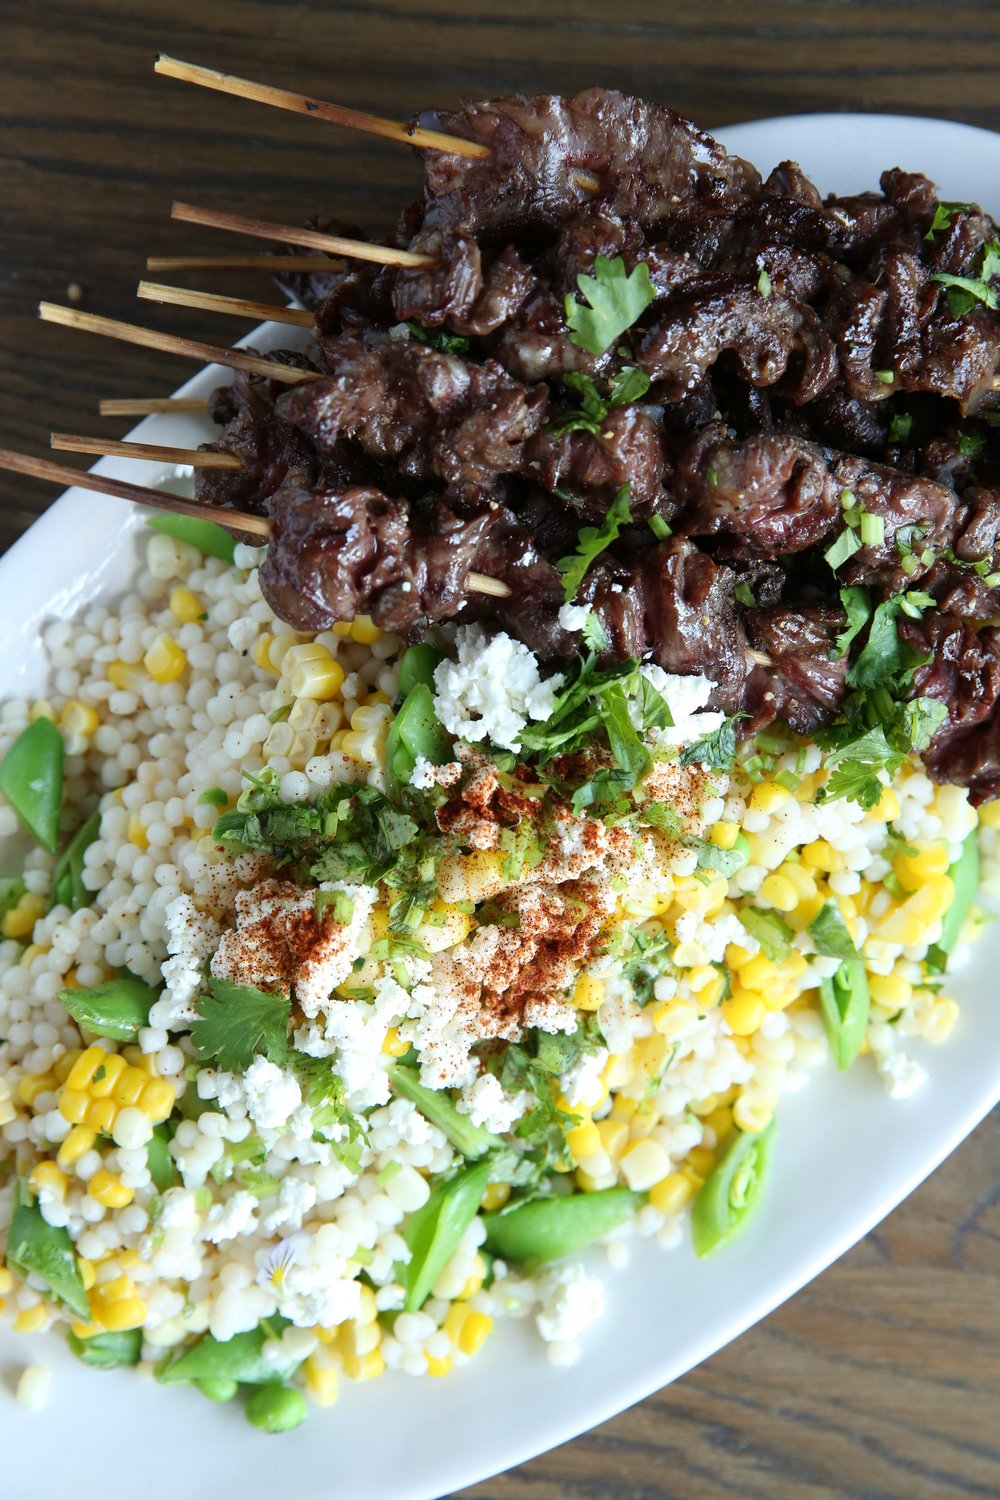 Grilled Steak Skewers with Corn and Couscous Salad by Judy Kim